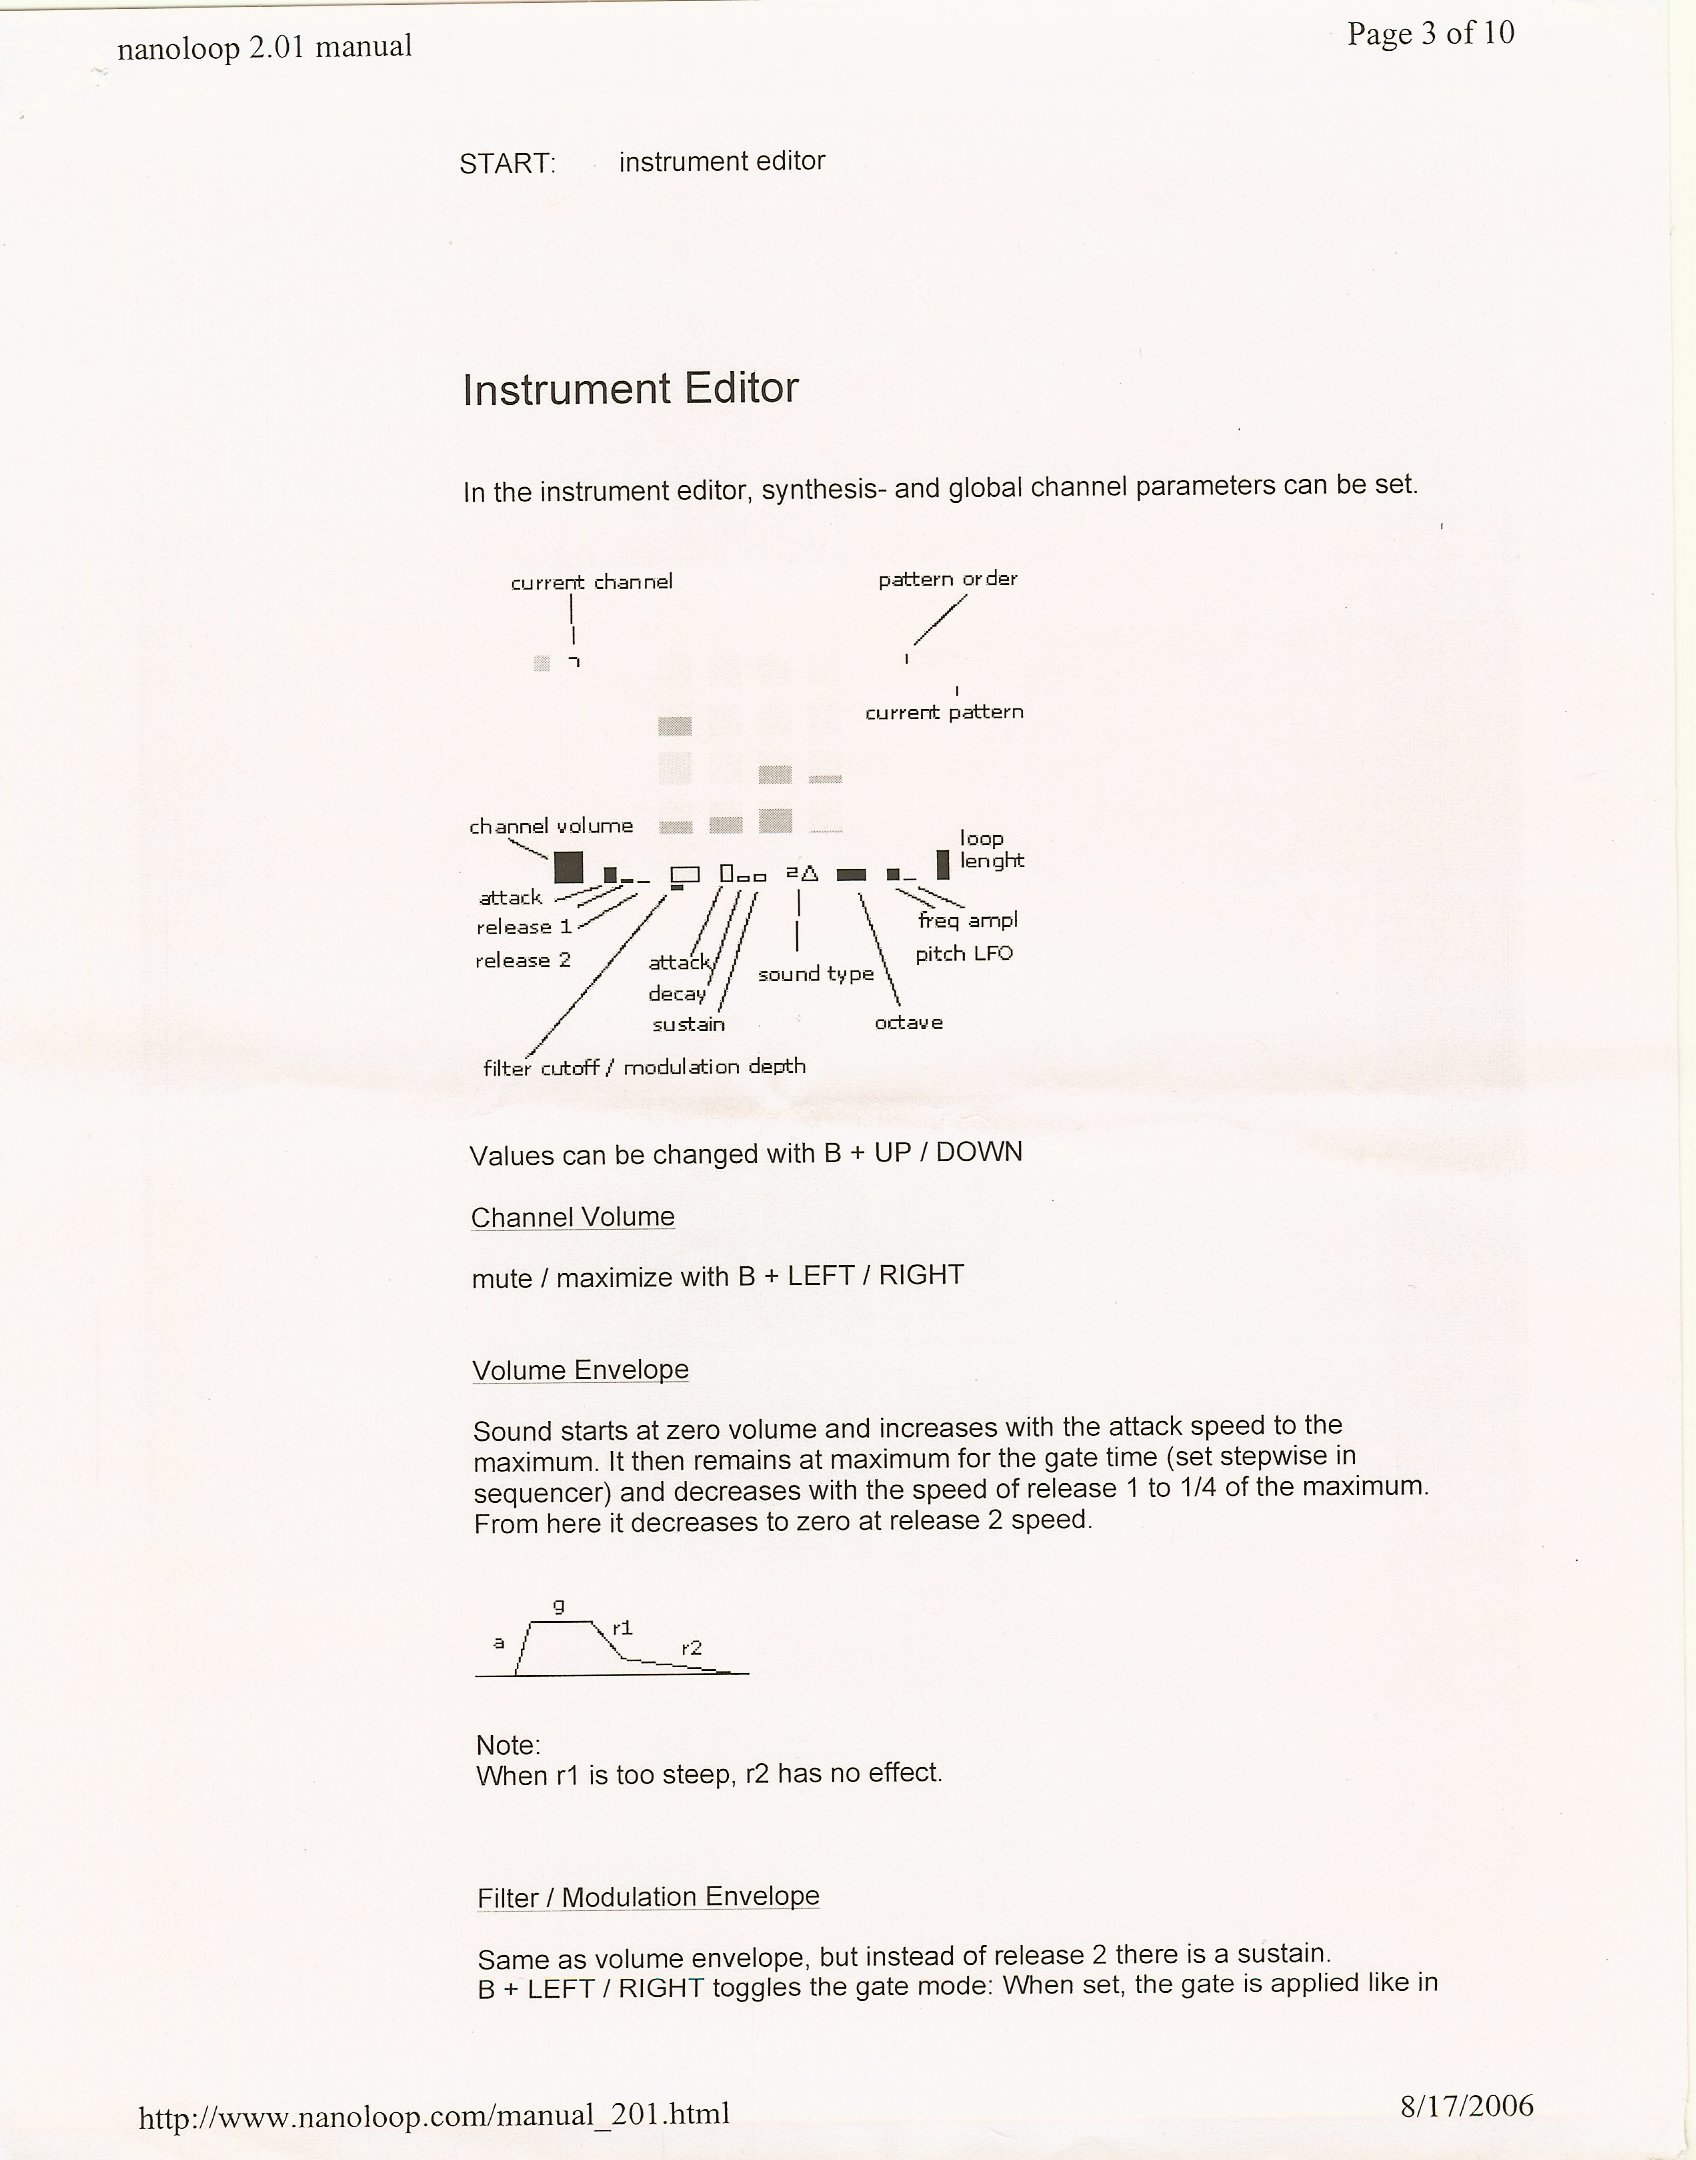 nanoloop_2.01_manual_page3_